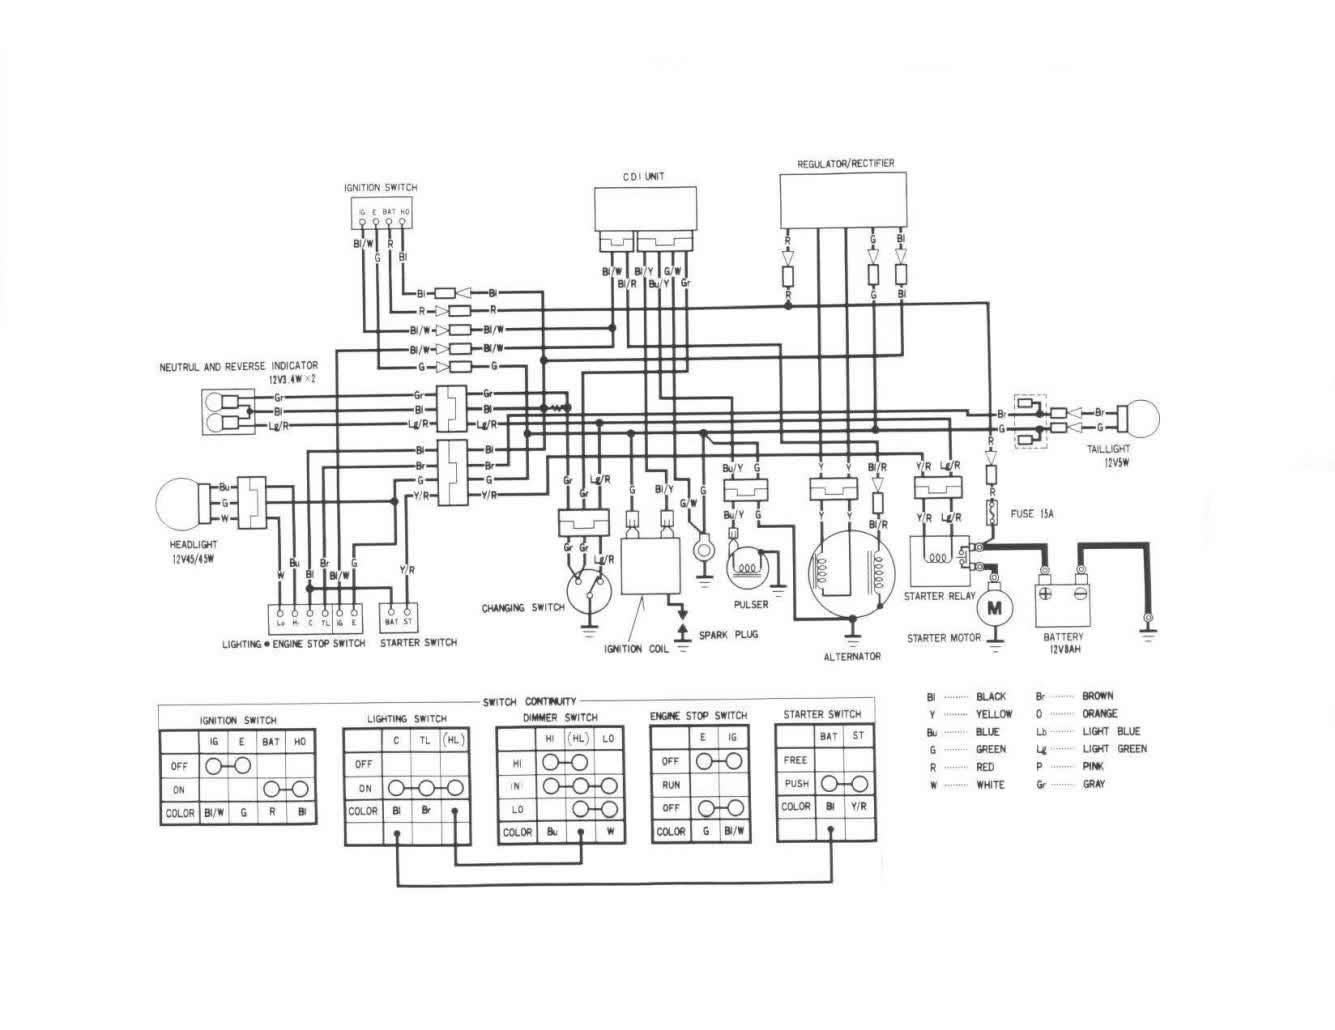 Kawasaki Bayou 300 Wiring Harness : 33 Wiring Diagram Images ...